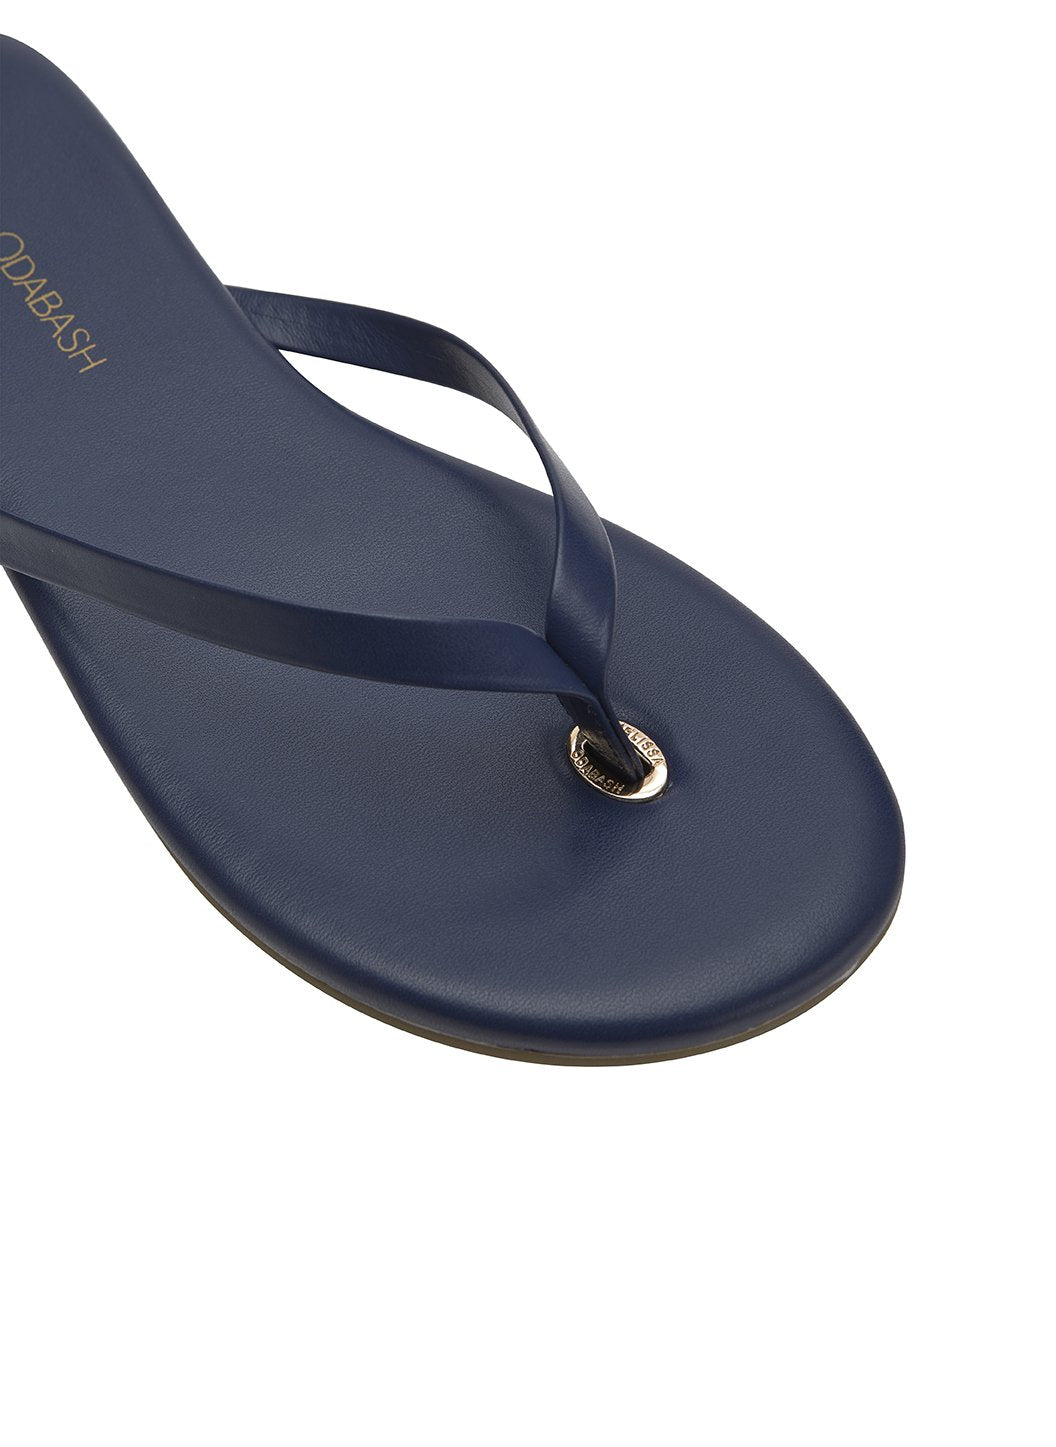 flip flop leather navy 2019 3